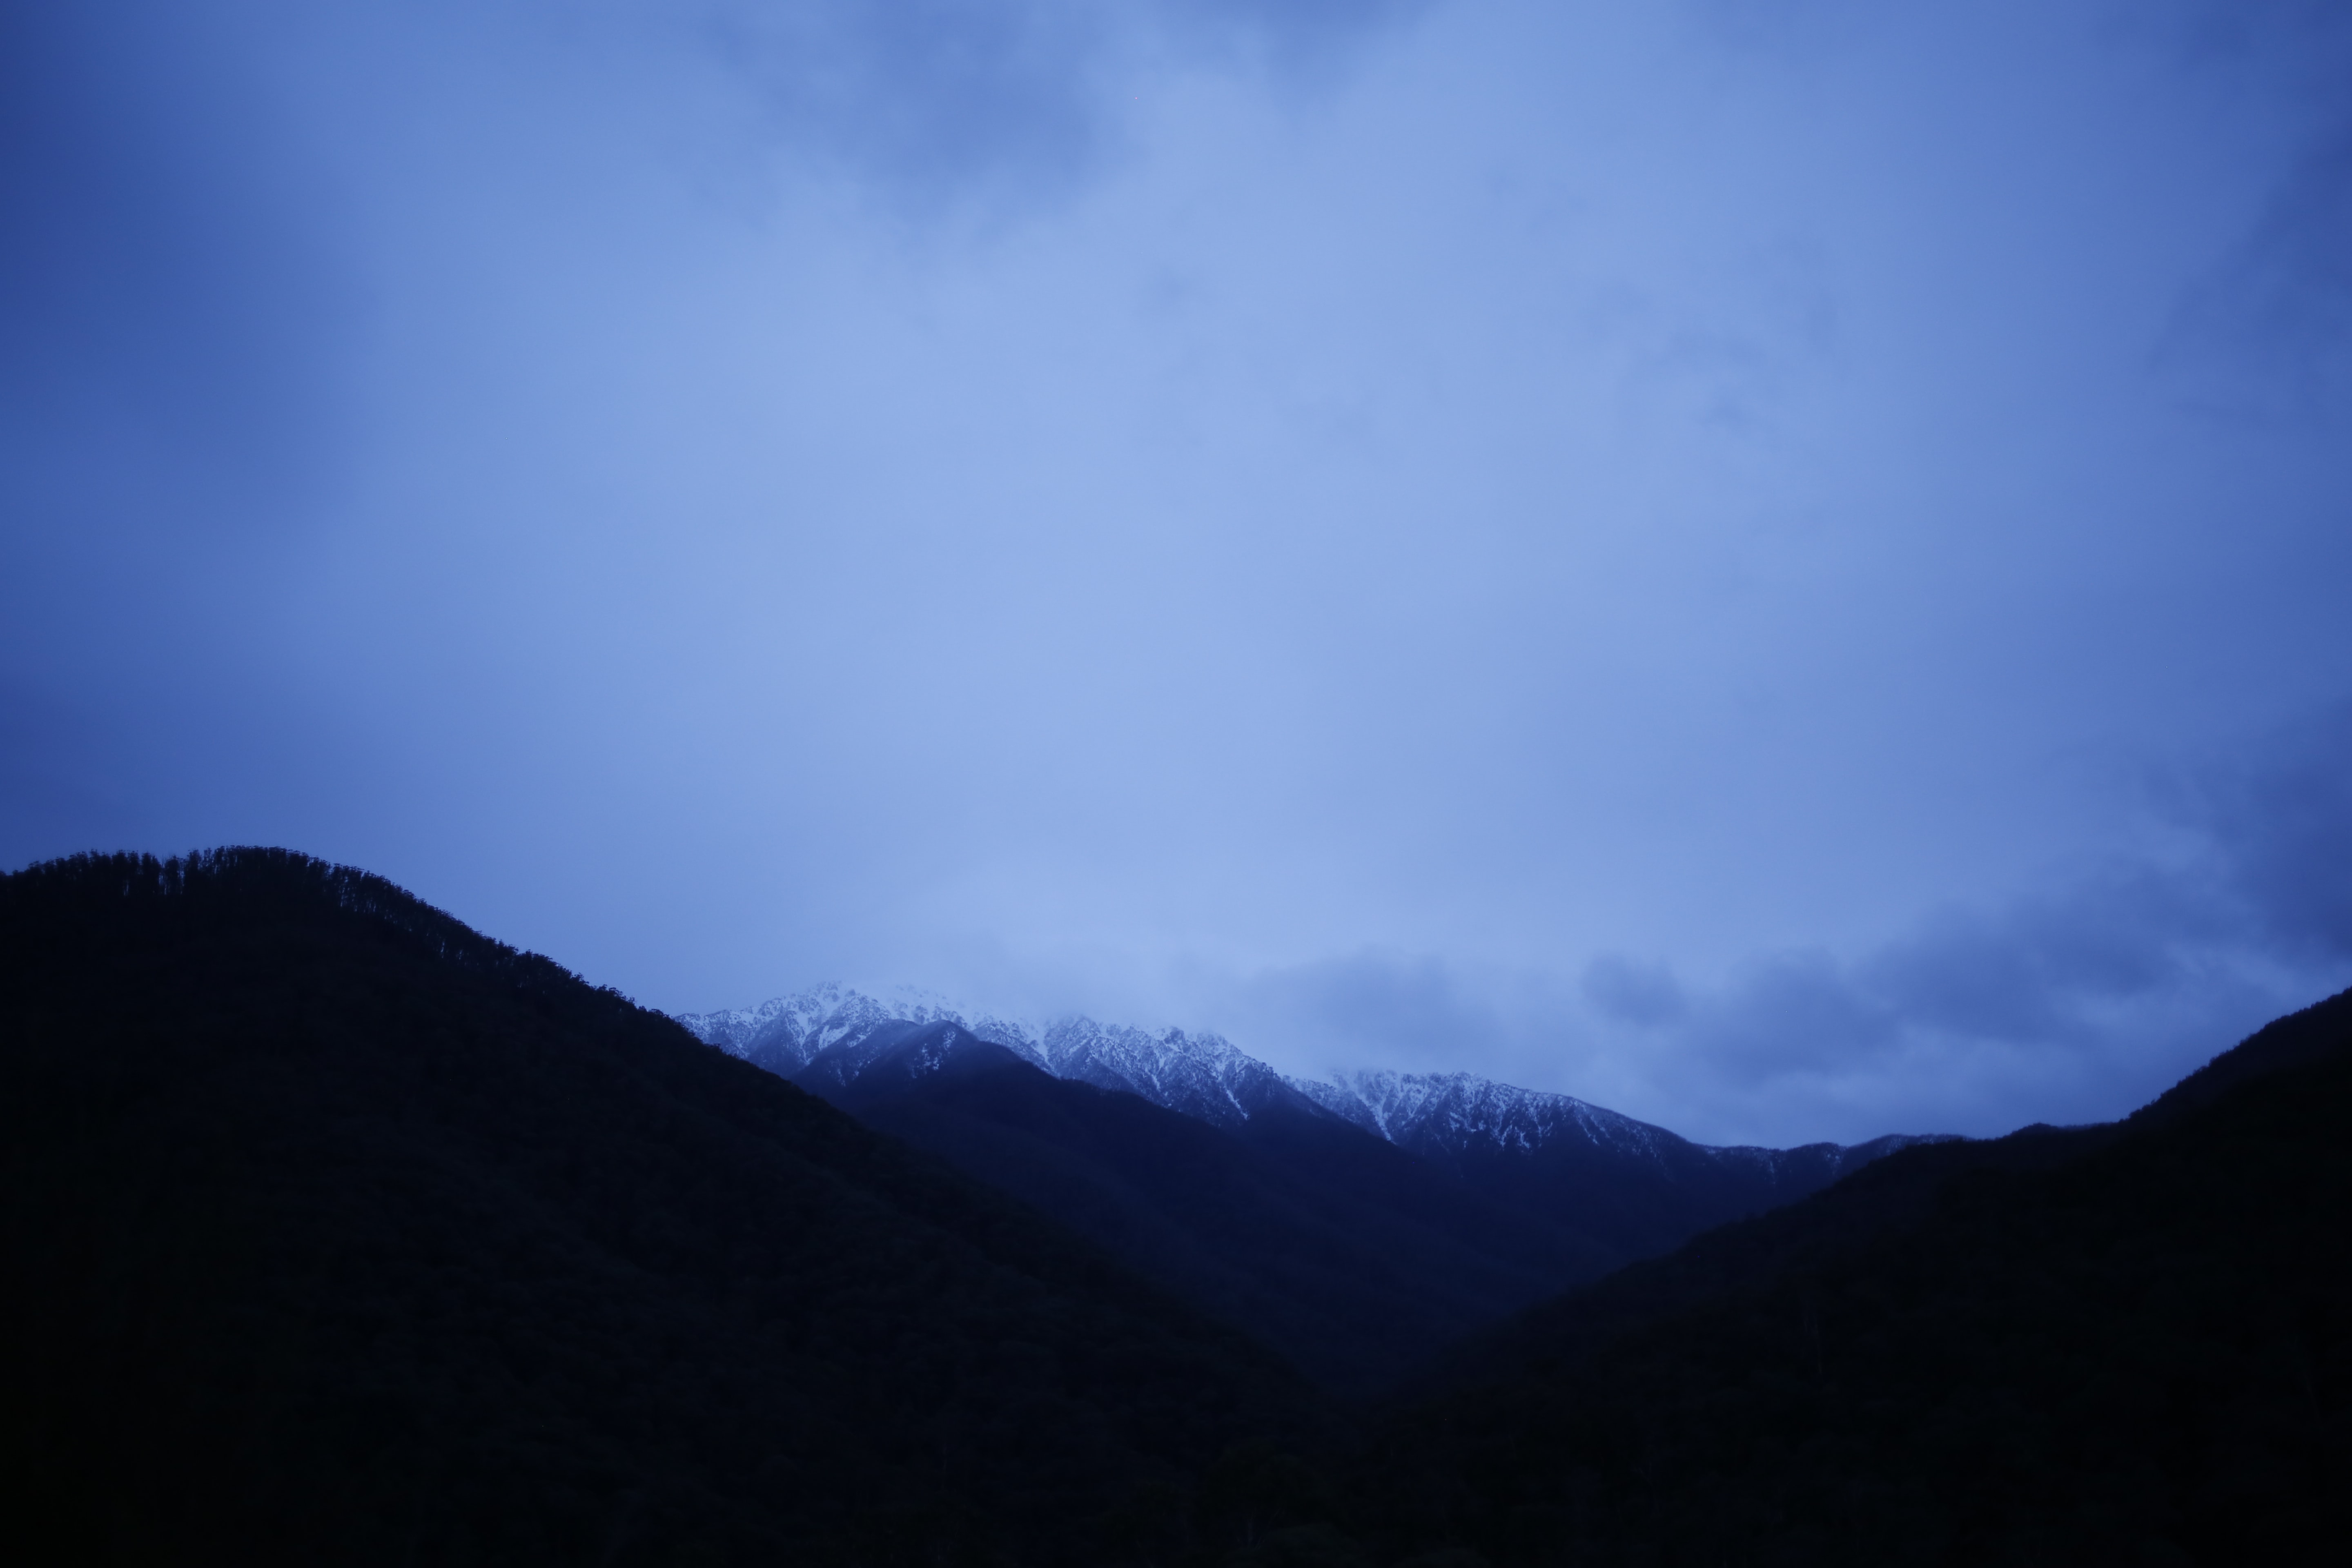 Cloudy blue sky shines on a silhouette of mountains in Falls Creek